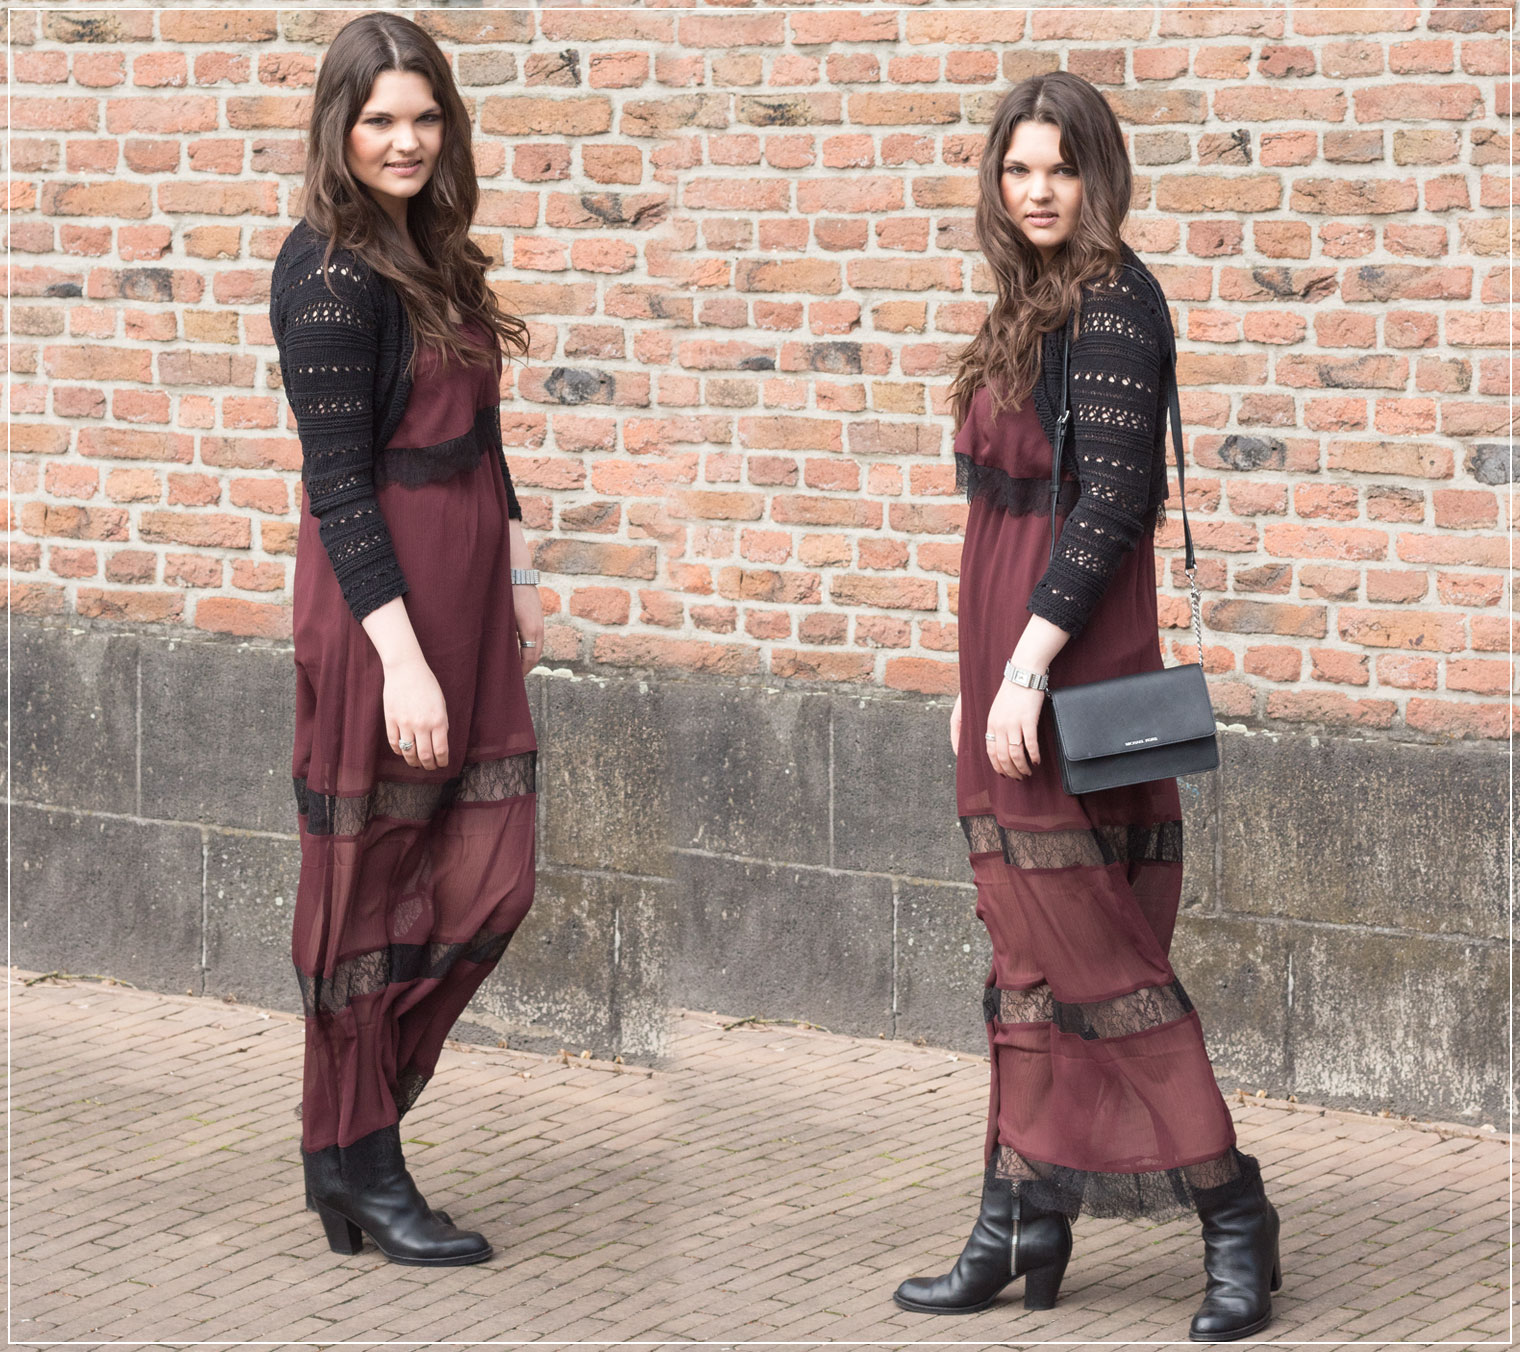 Outfit: Maxidress, Leather Boots and Michael Kors Bag